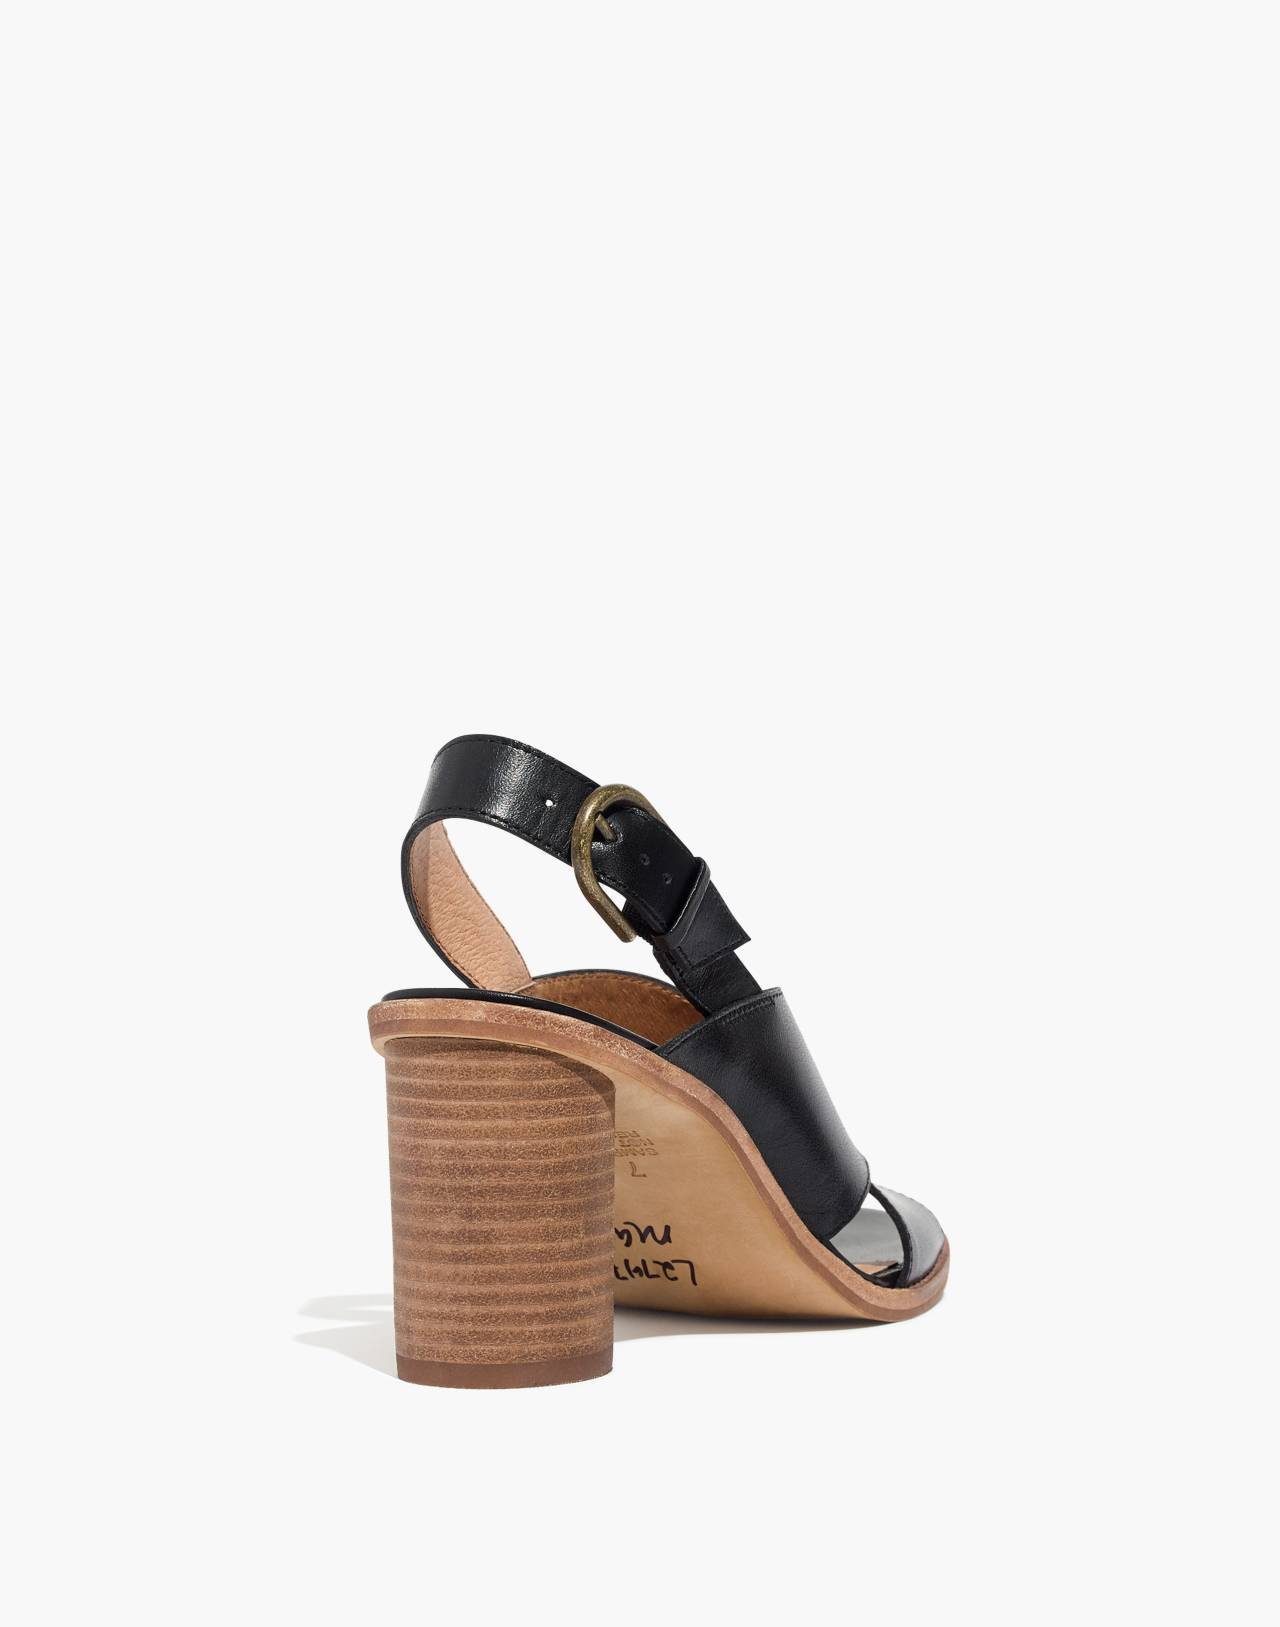 The Ruthie Crisscross Sandal in Leather in true black image 4